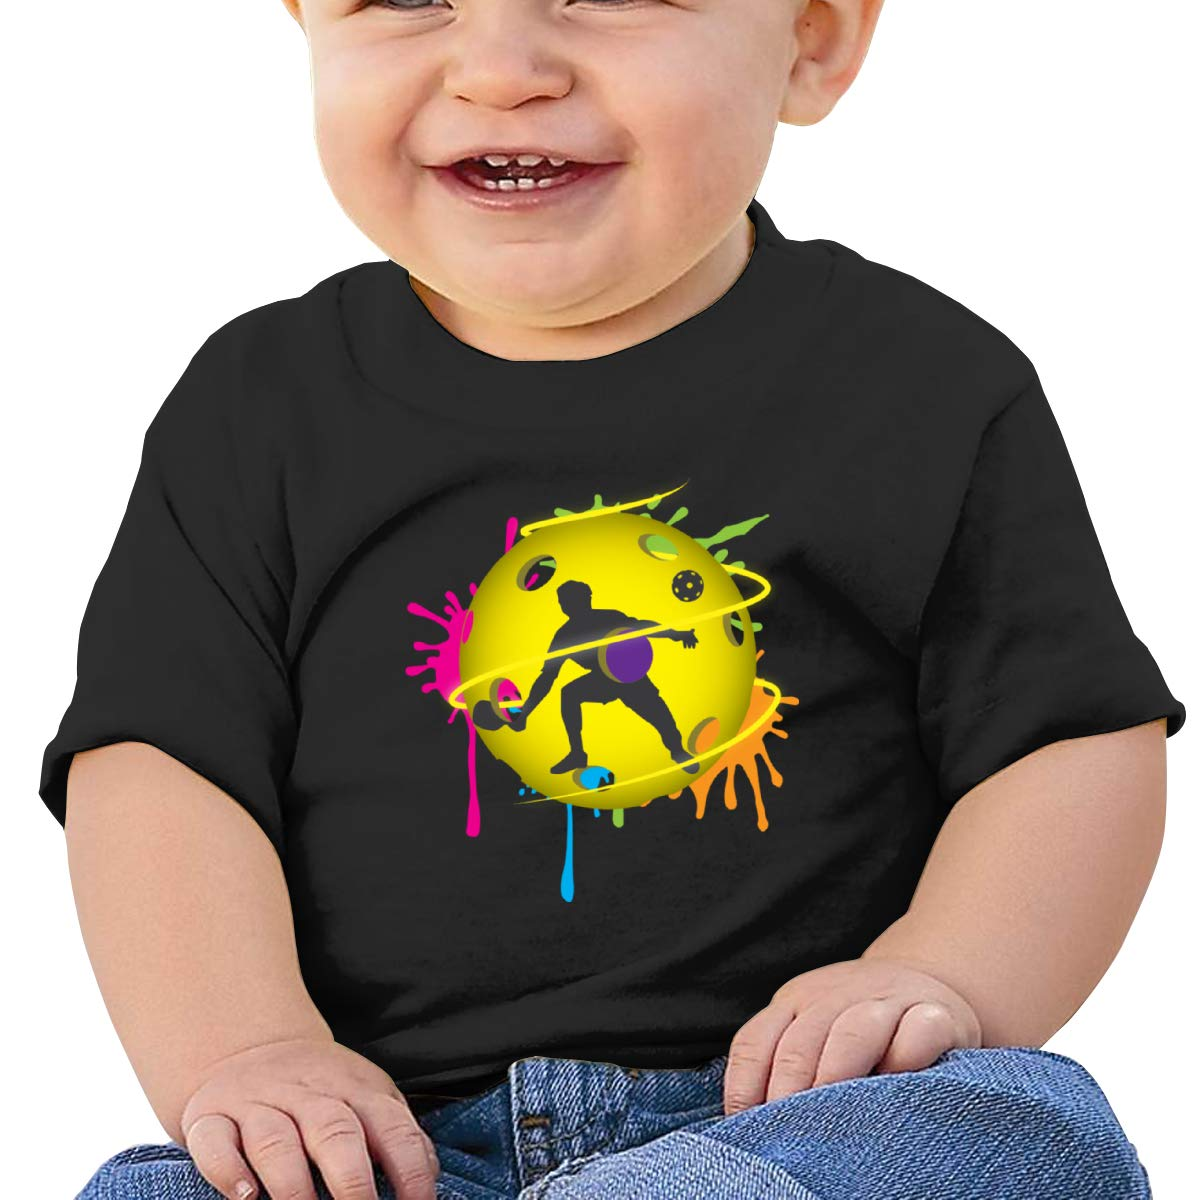 Moniery Neon Pickleball Player Short Sleeves T Shirt Baby Boys Toddler